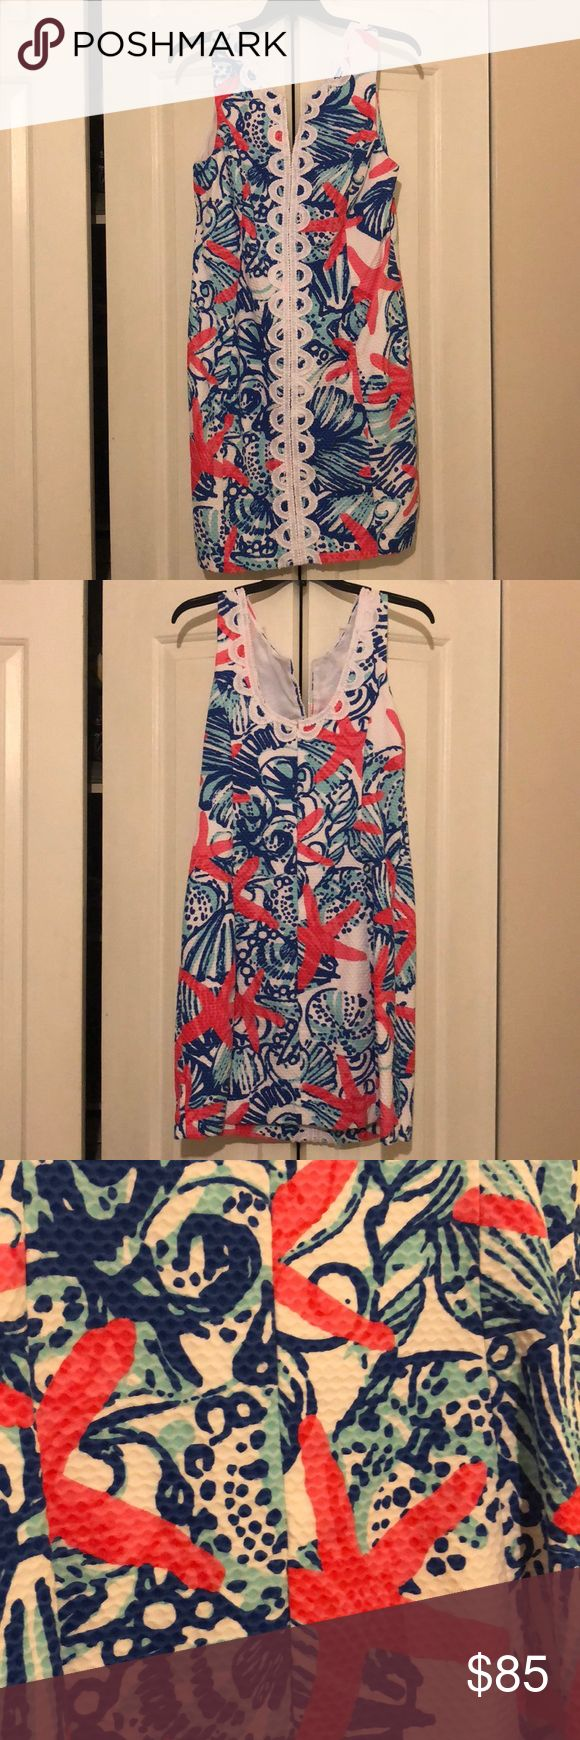 Red, white, and blue Lilly Pulitzer dress! This one is so hard to let go!! One of my favorite prints, perfect for a night out or 4th of July!  Lovely detailing with a beautiful print.  Size 8! My lighting is super amateur and poor, but I swear the white is Indeed WHITE on the dress, not yellow at all! Lilly Pulitzer Dresses